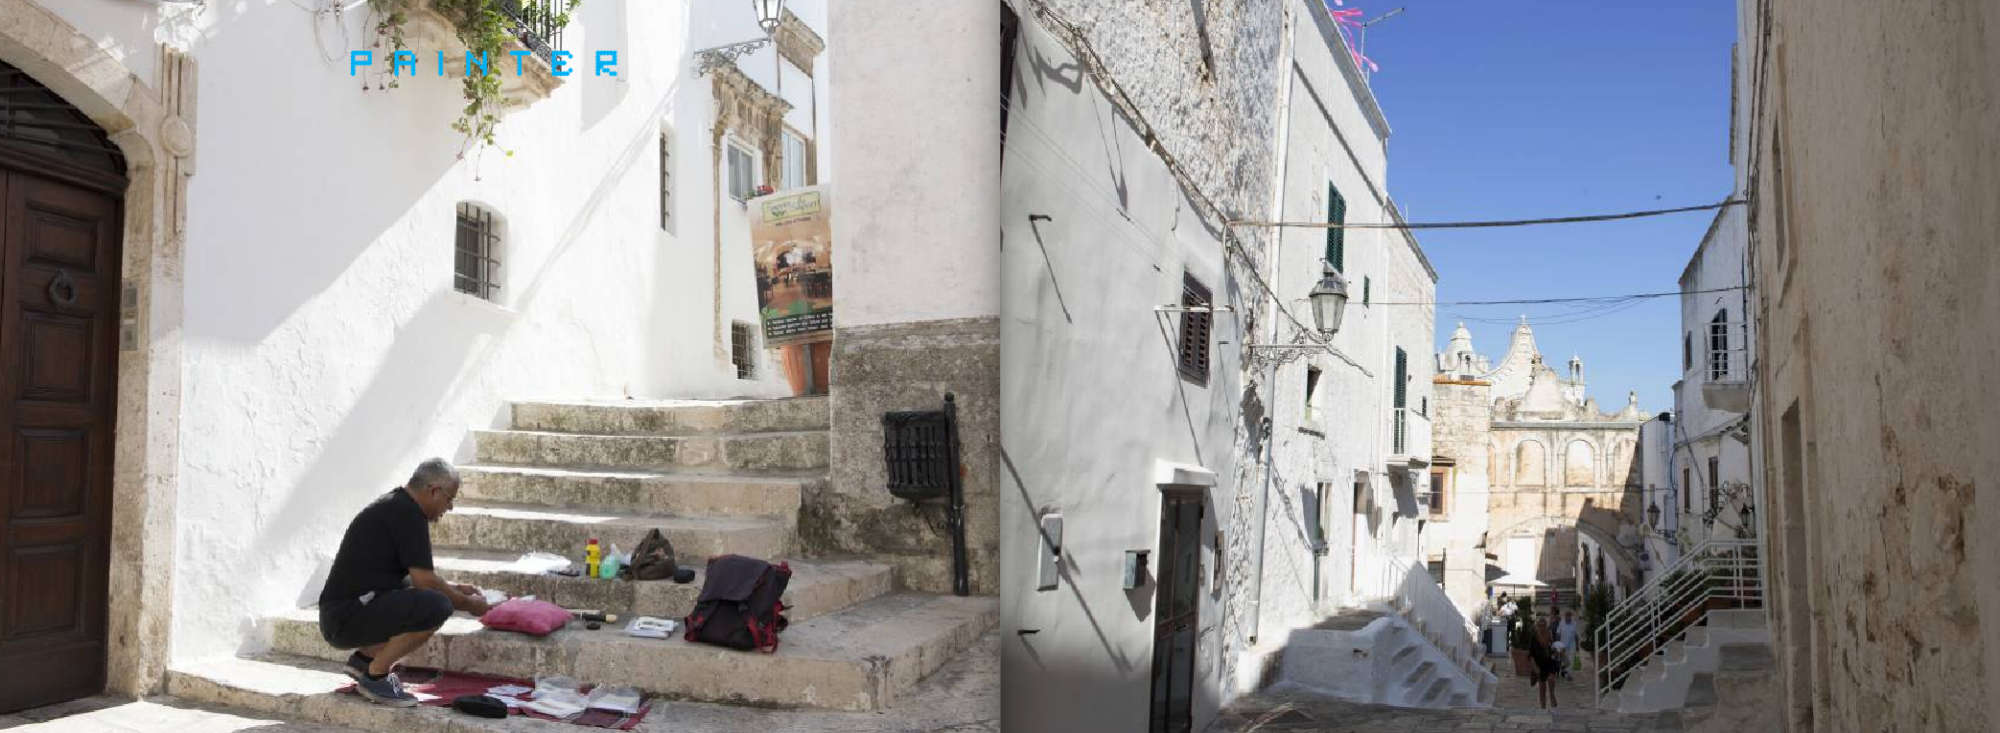 Puglia Album - Page 406: A painter on the steps - Page 41: The old city